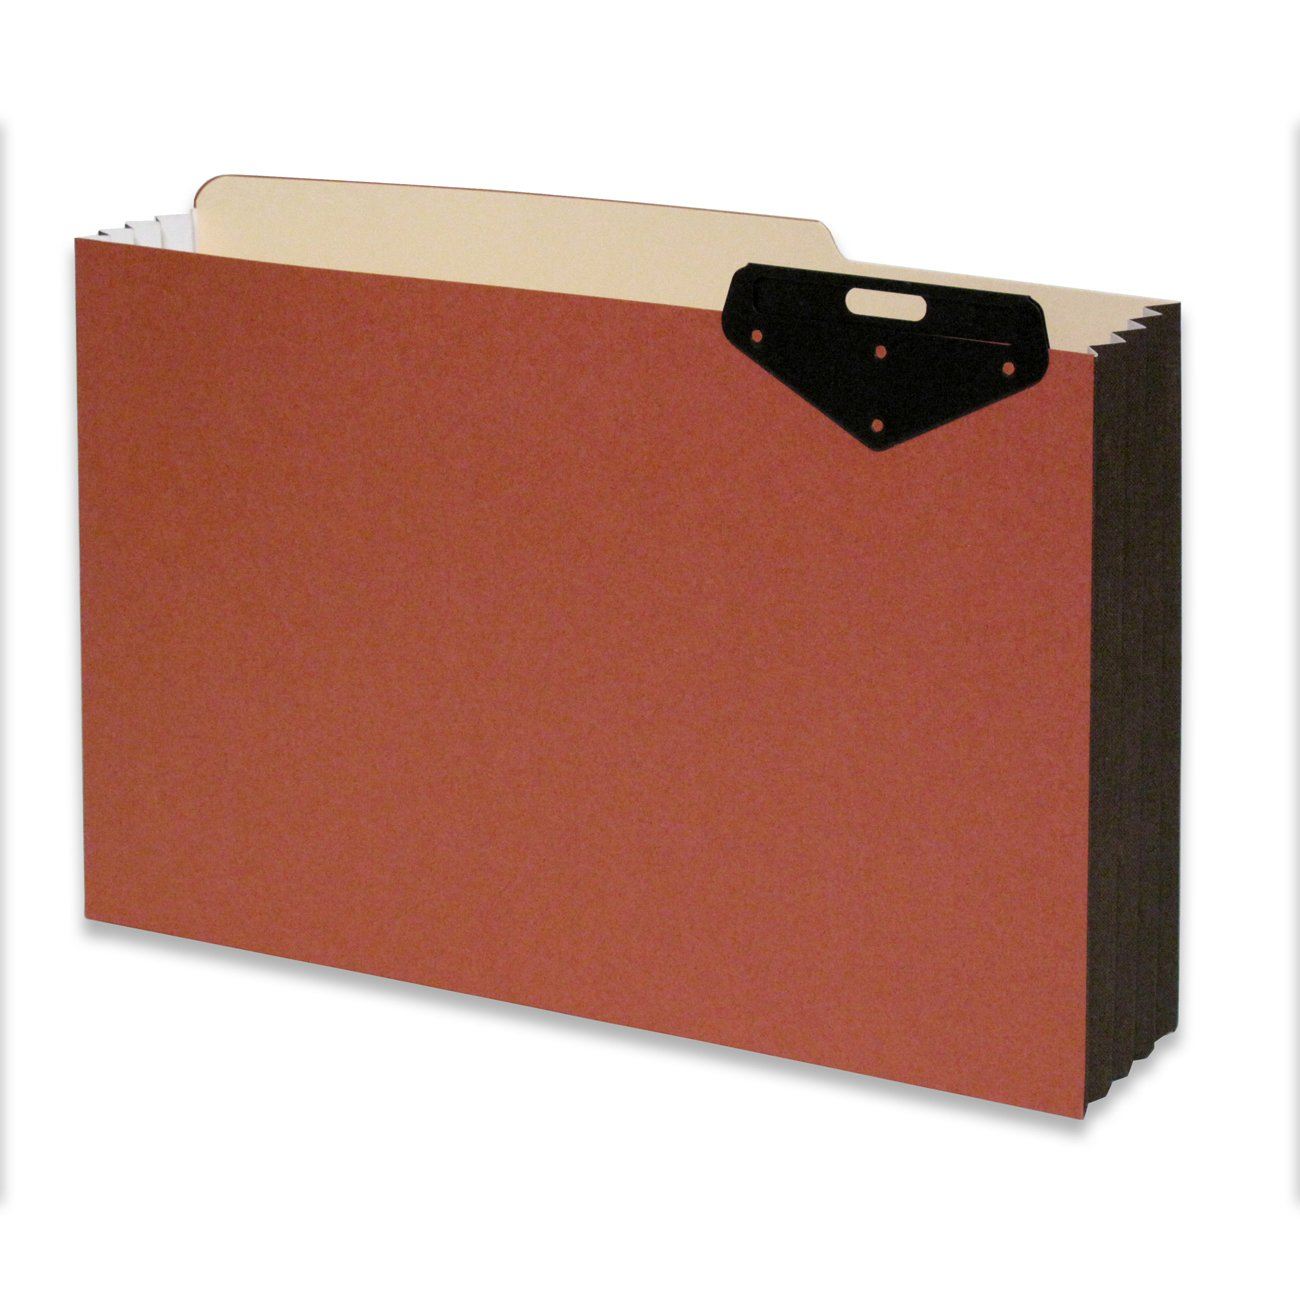 ALL-STATE LEGAL File Jacket, 10''x 15'' Legal Size with 3 1/2'' Fully Reinforced Tyvek Gusset, Metal Tab On Right Front Panel, 50 per Carton